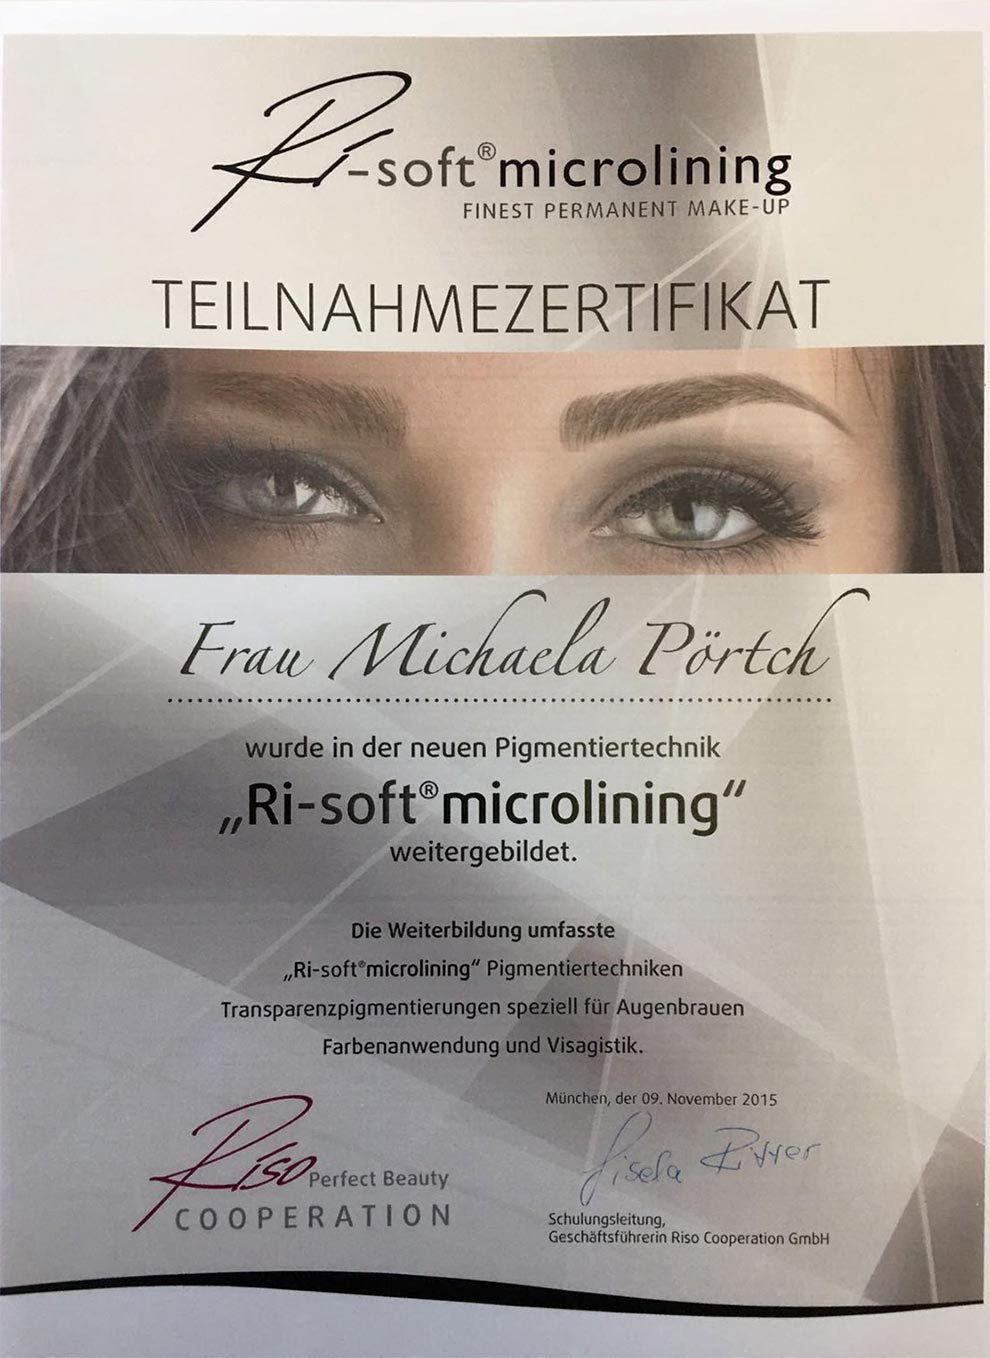 Teilnahmezertifikat Ri-soft Lining Permanent Make-up